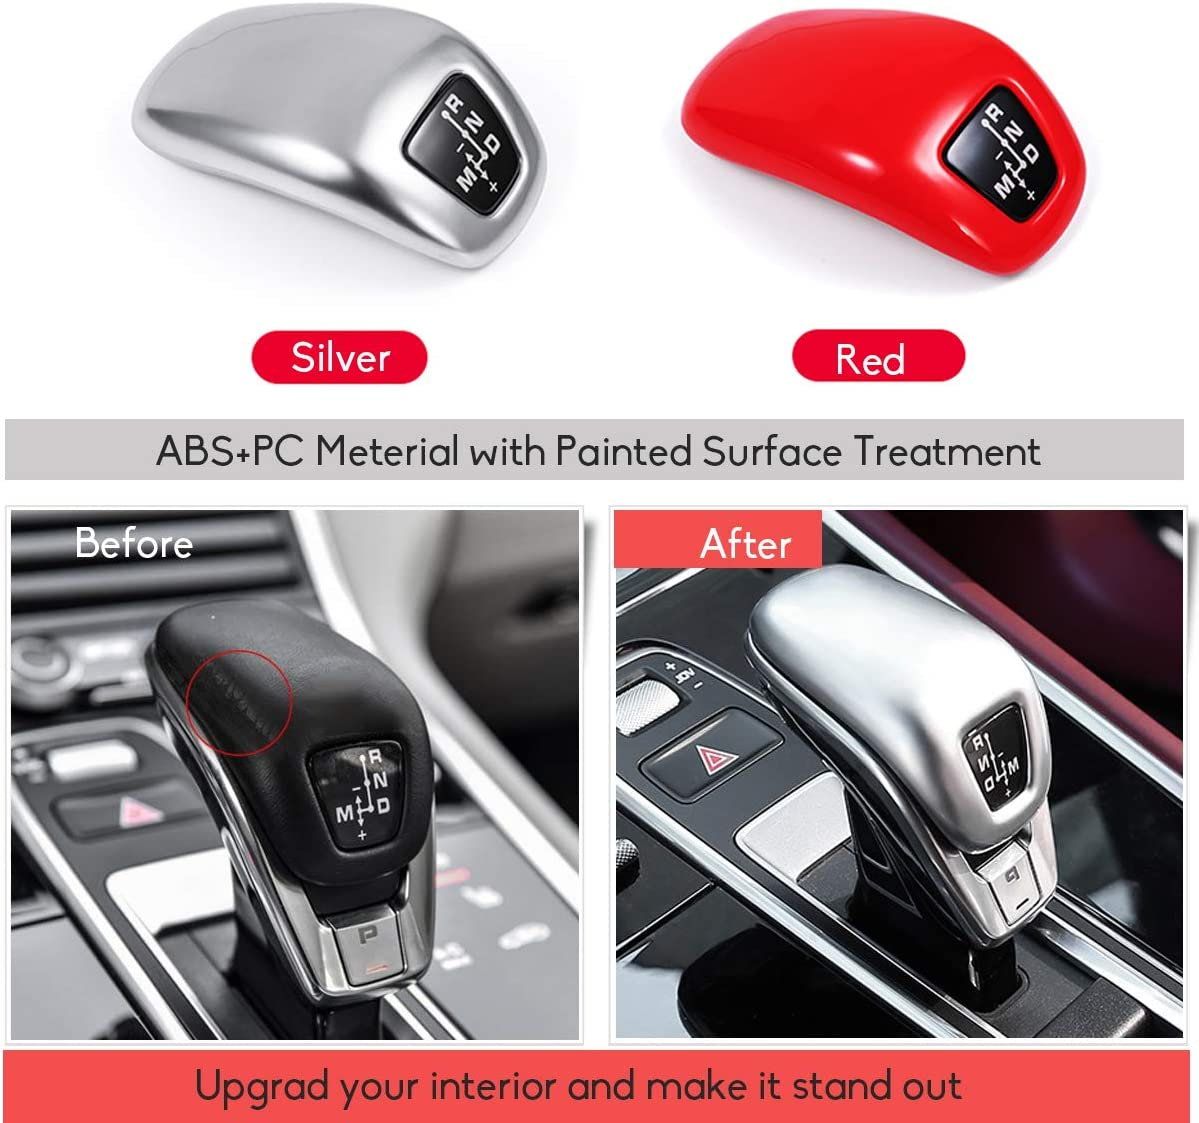 Fits:Porsche Cayenne 2019 9Y0 Jaronx Gear Shift Knob Cover Replacement for Porsche Cayenne 2019 Glossy Red Shift Knob Cover Painted Shift Knob Protector